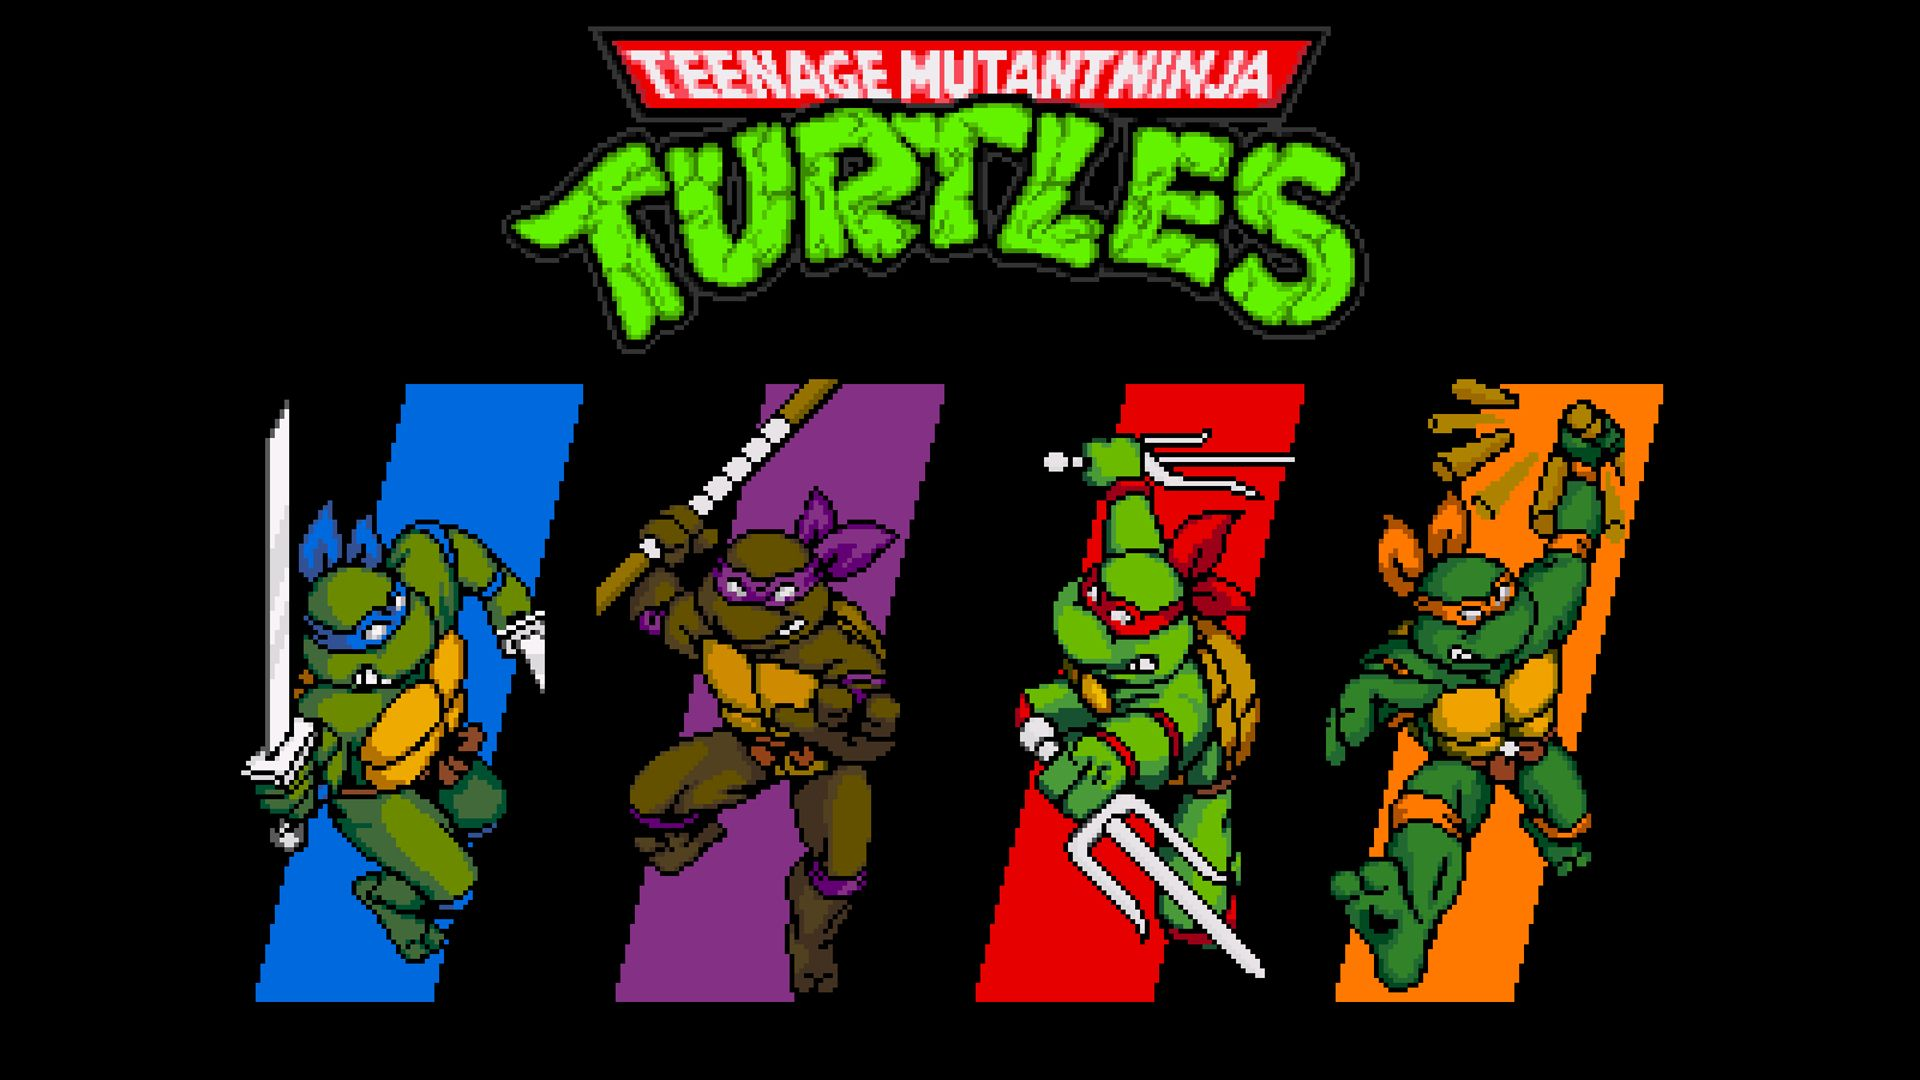 Teenage mutant ninja turtles wallpaper collection for free download teenage mutant ninja turtles wallpaper collection for free download voltagebd Gallery